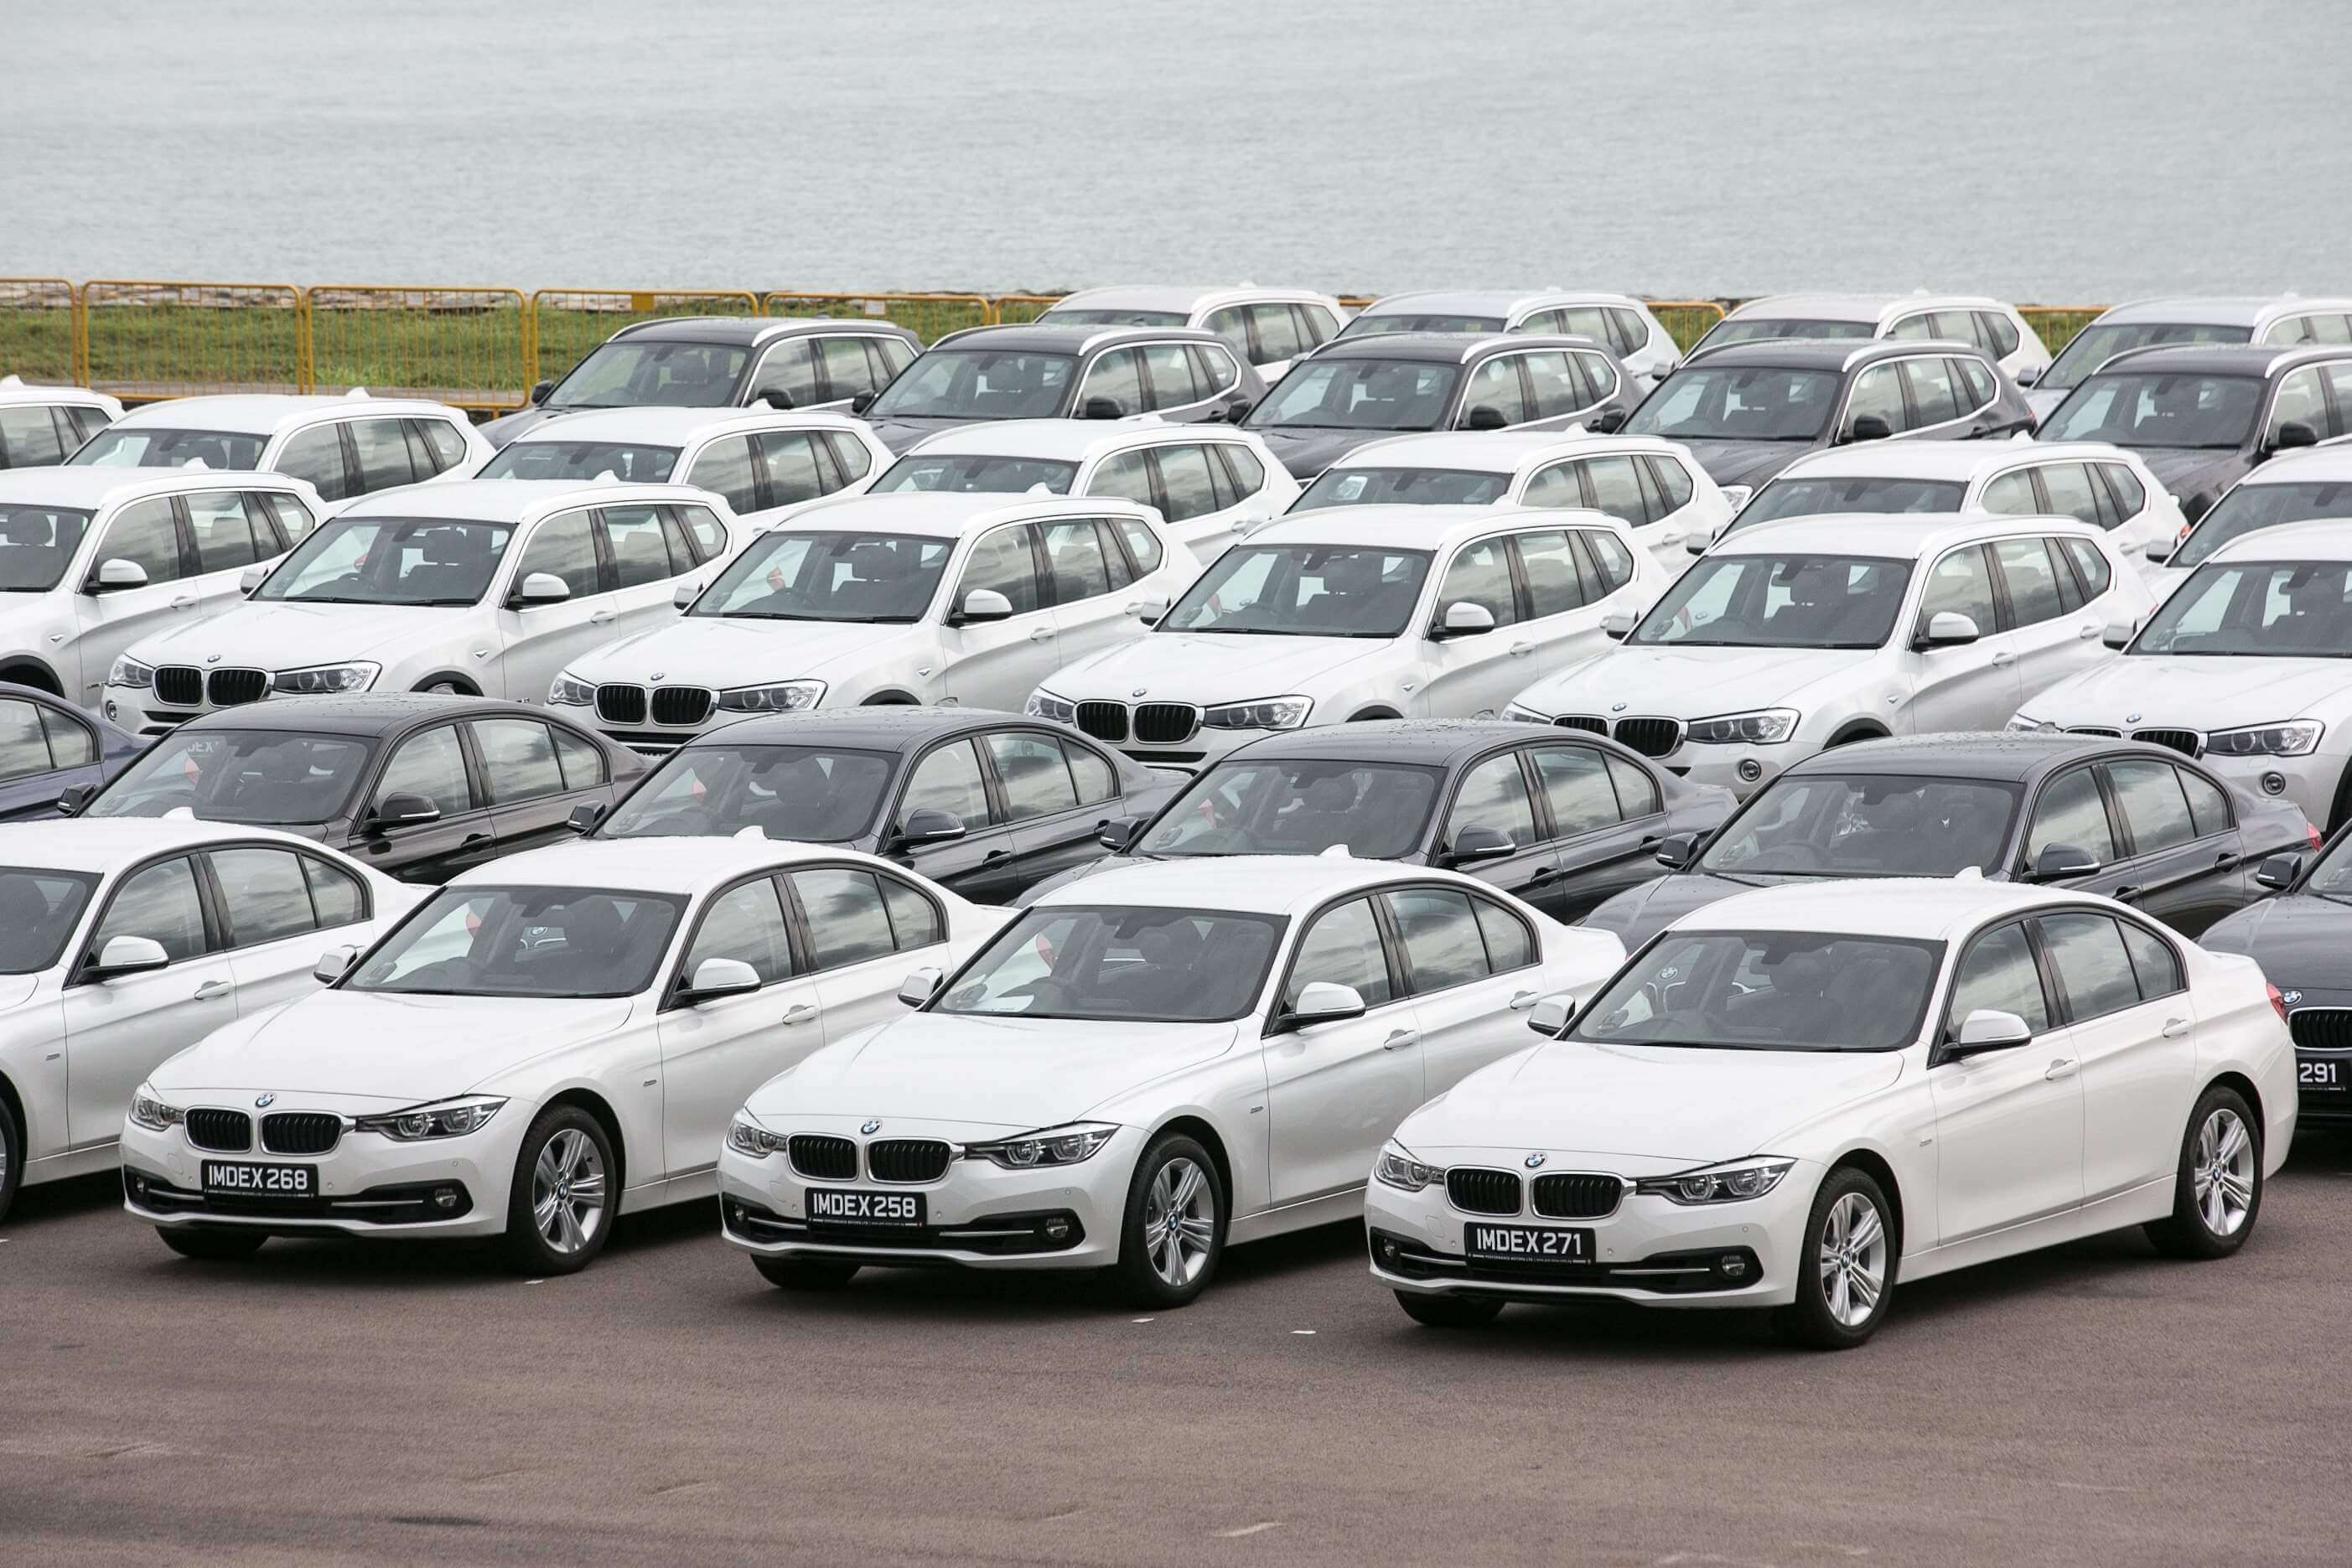 Multiples bmw - How To Magically Manifest